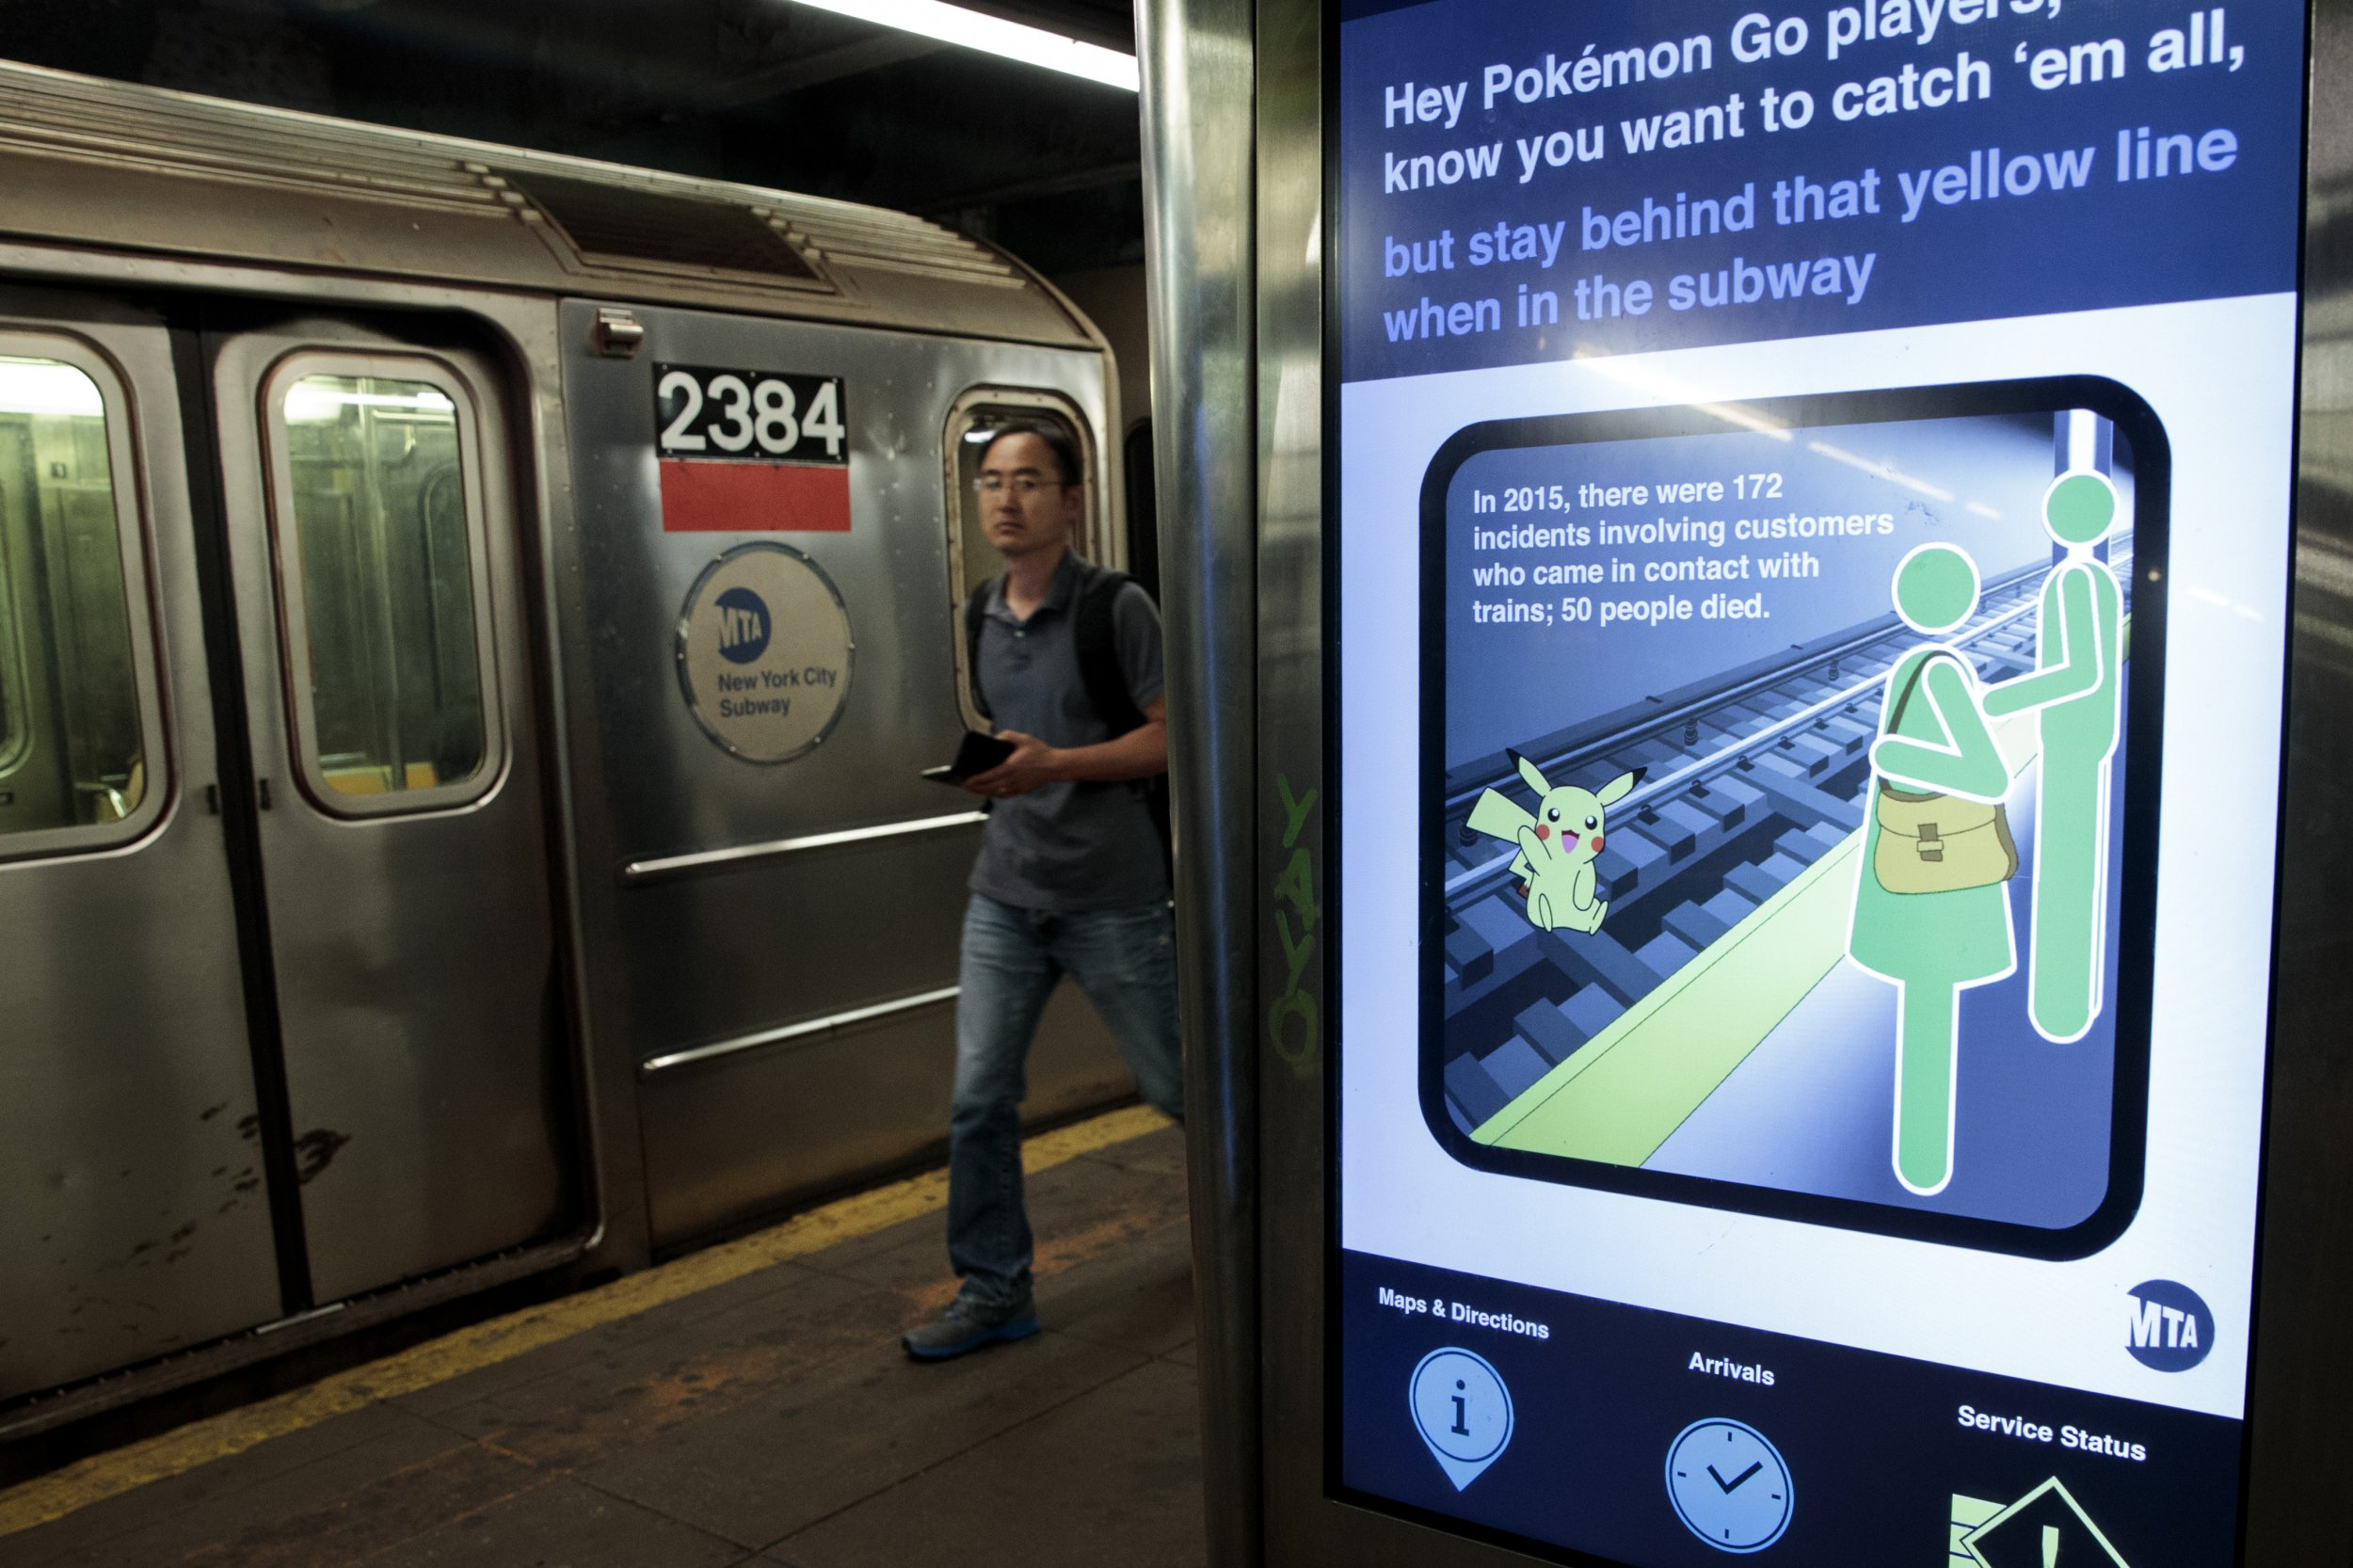 New York Governor Cuomo Bans Sex Offenders from Pokemon